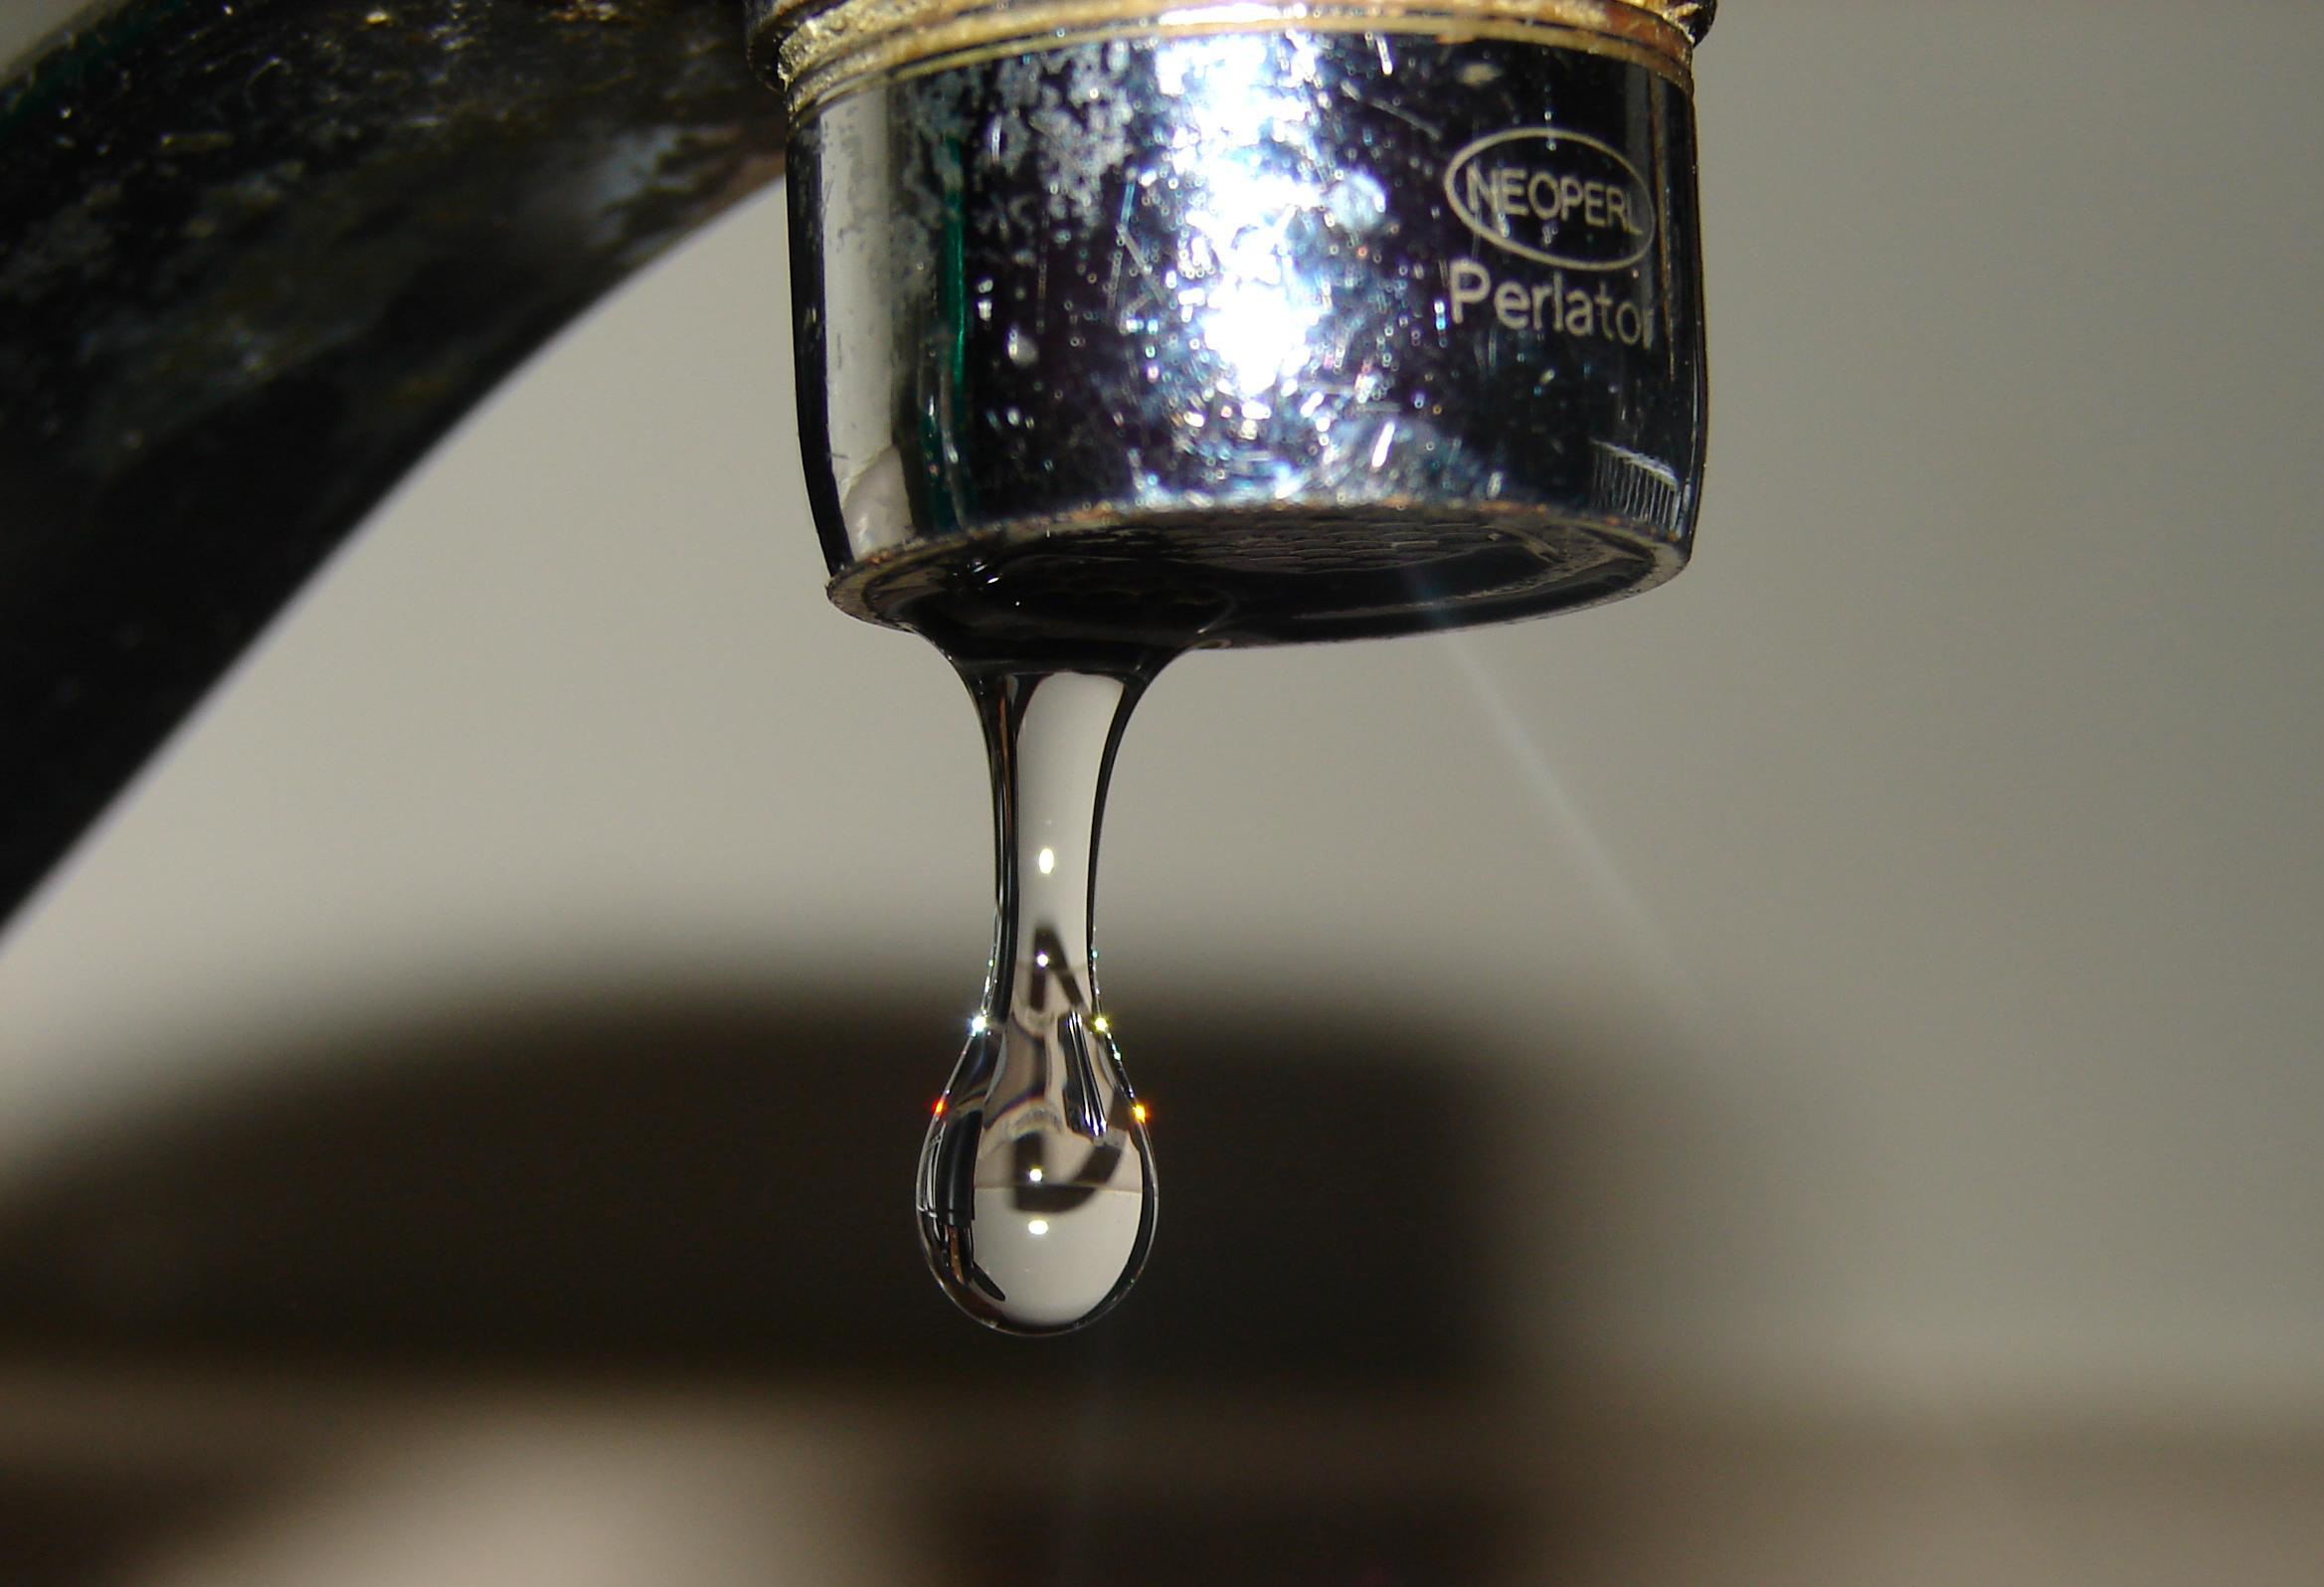 Mayoral candidate: Detroiters should not have to pay for contaminated water